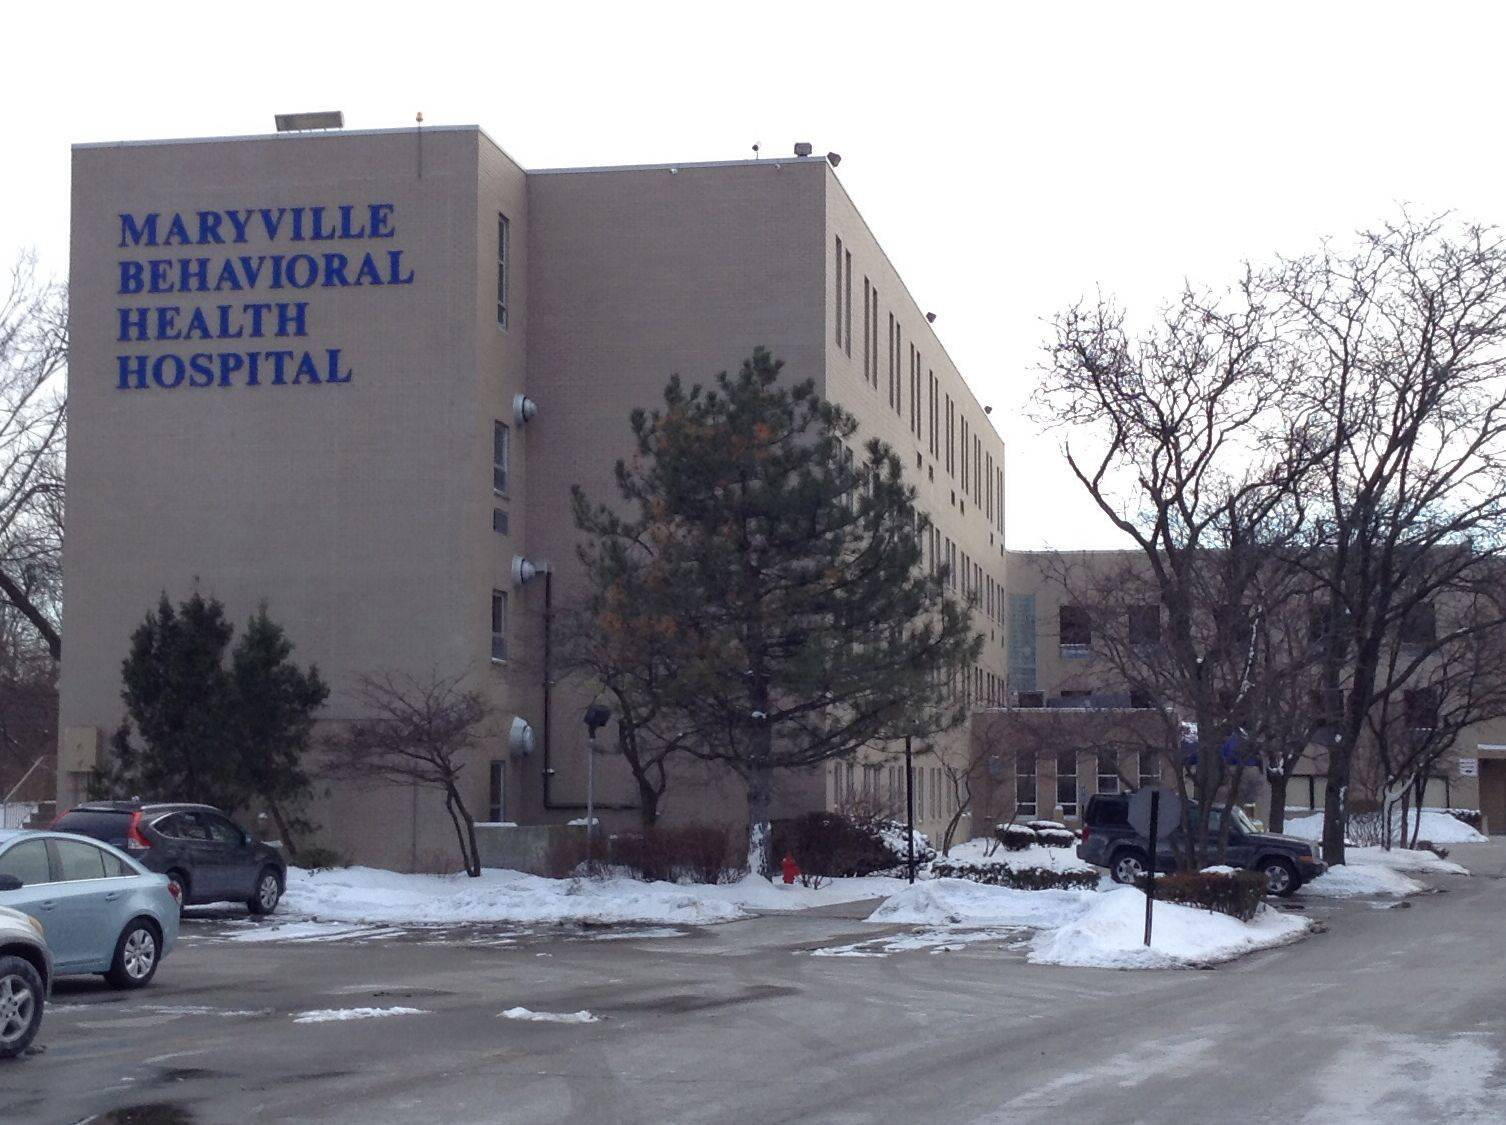 A prospect buyer is in negotiations to purchase the Maryville Behavioral Health Hospital in Des Plaines, officials confirmed. Maryville announced plans in March to close the facility permanently because of heavy financial losses.